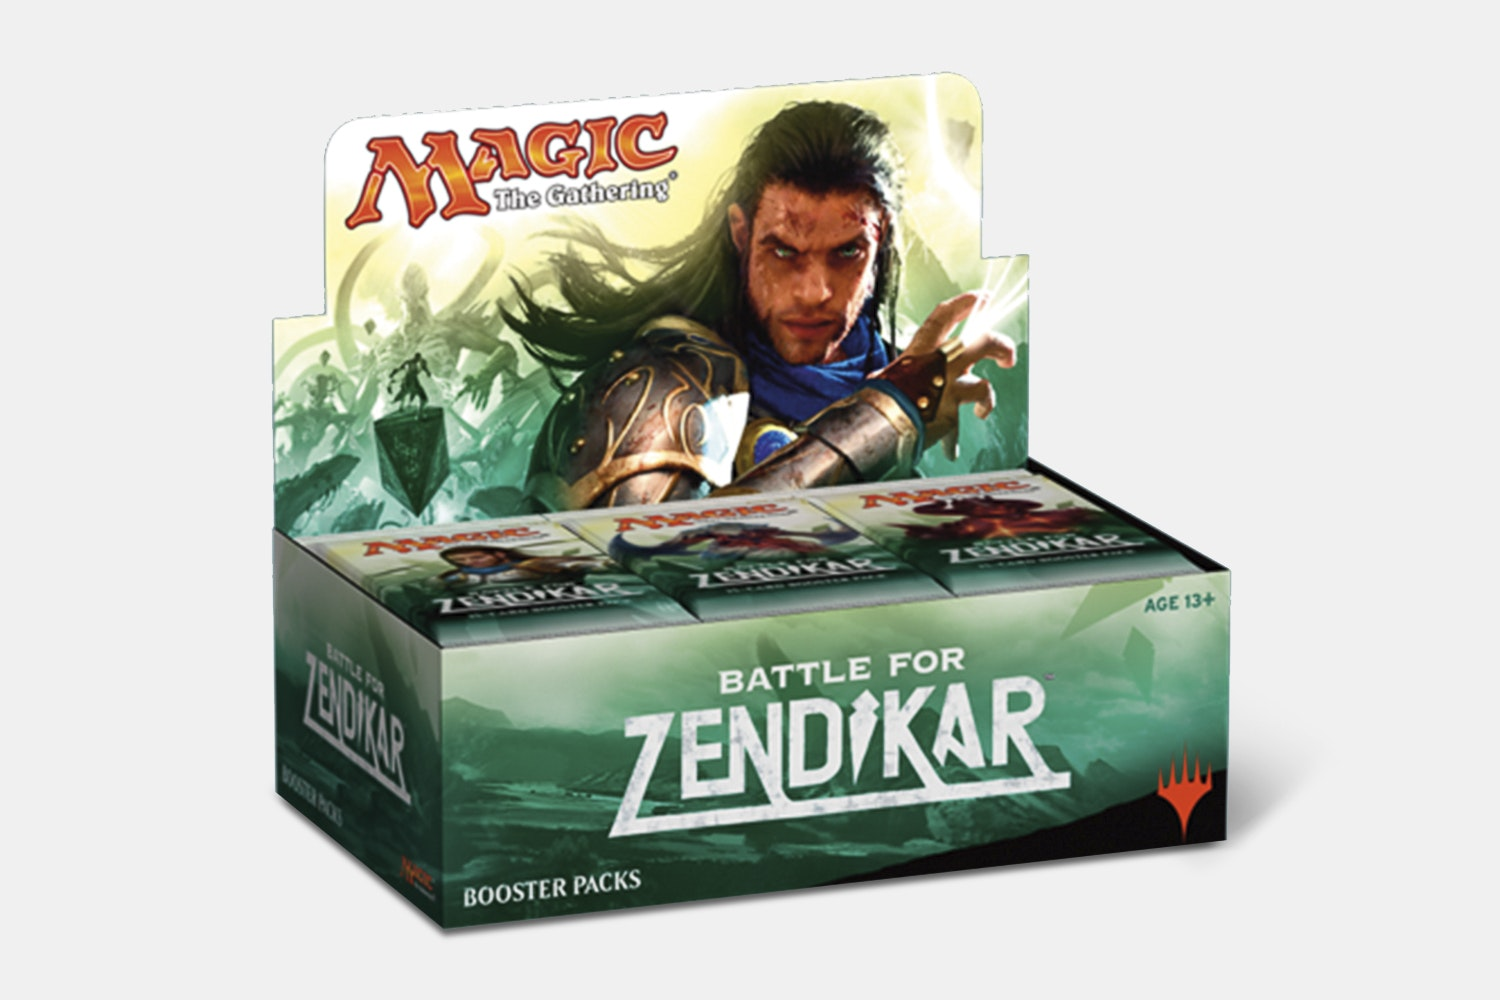 Battle for Zendikar